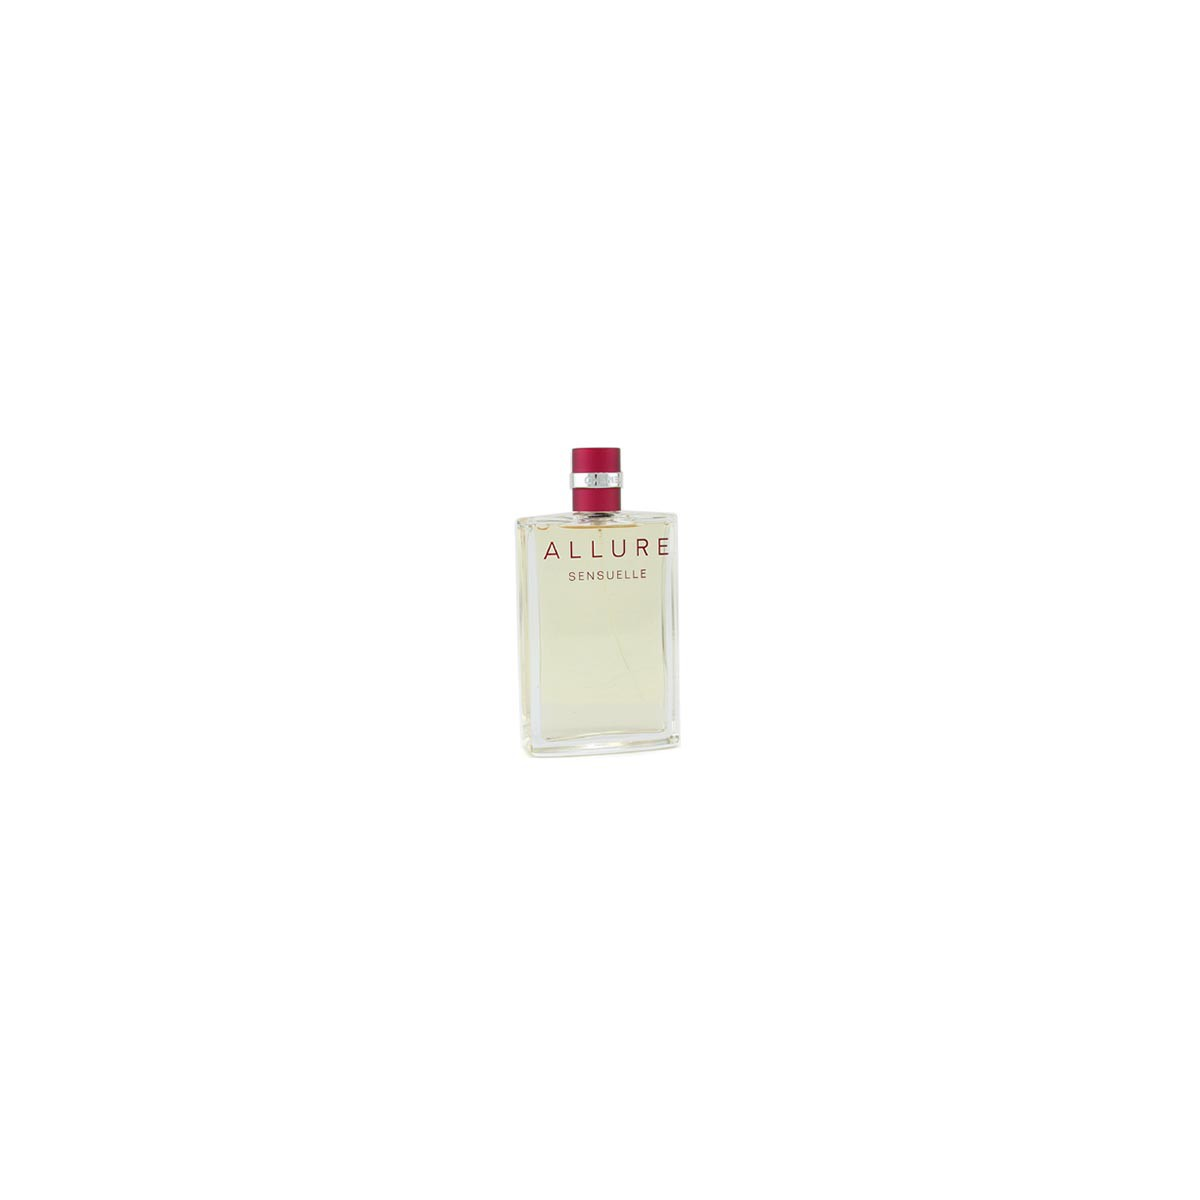 Chanel Allure Sensuelle Eau De Toilette 100 ml